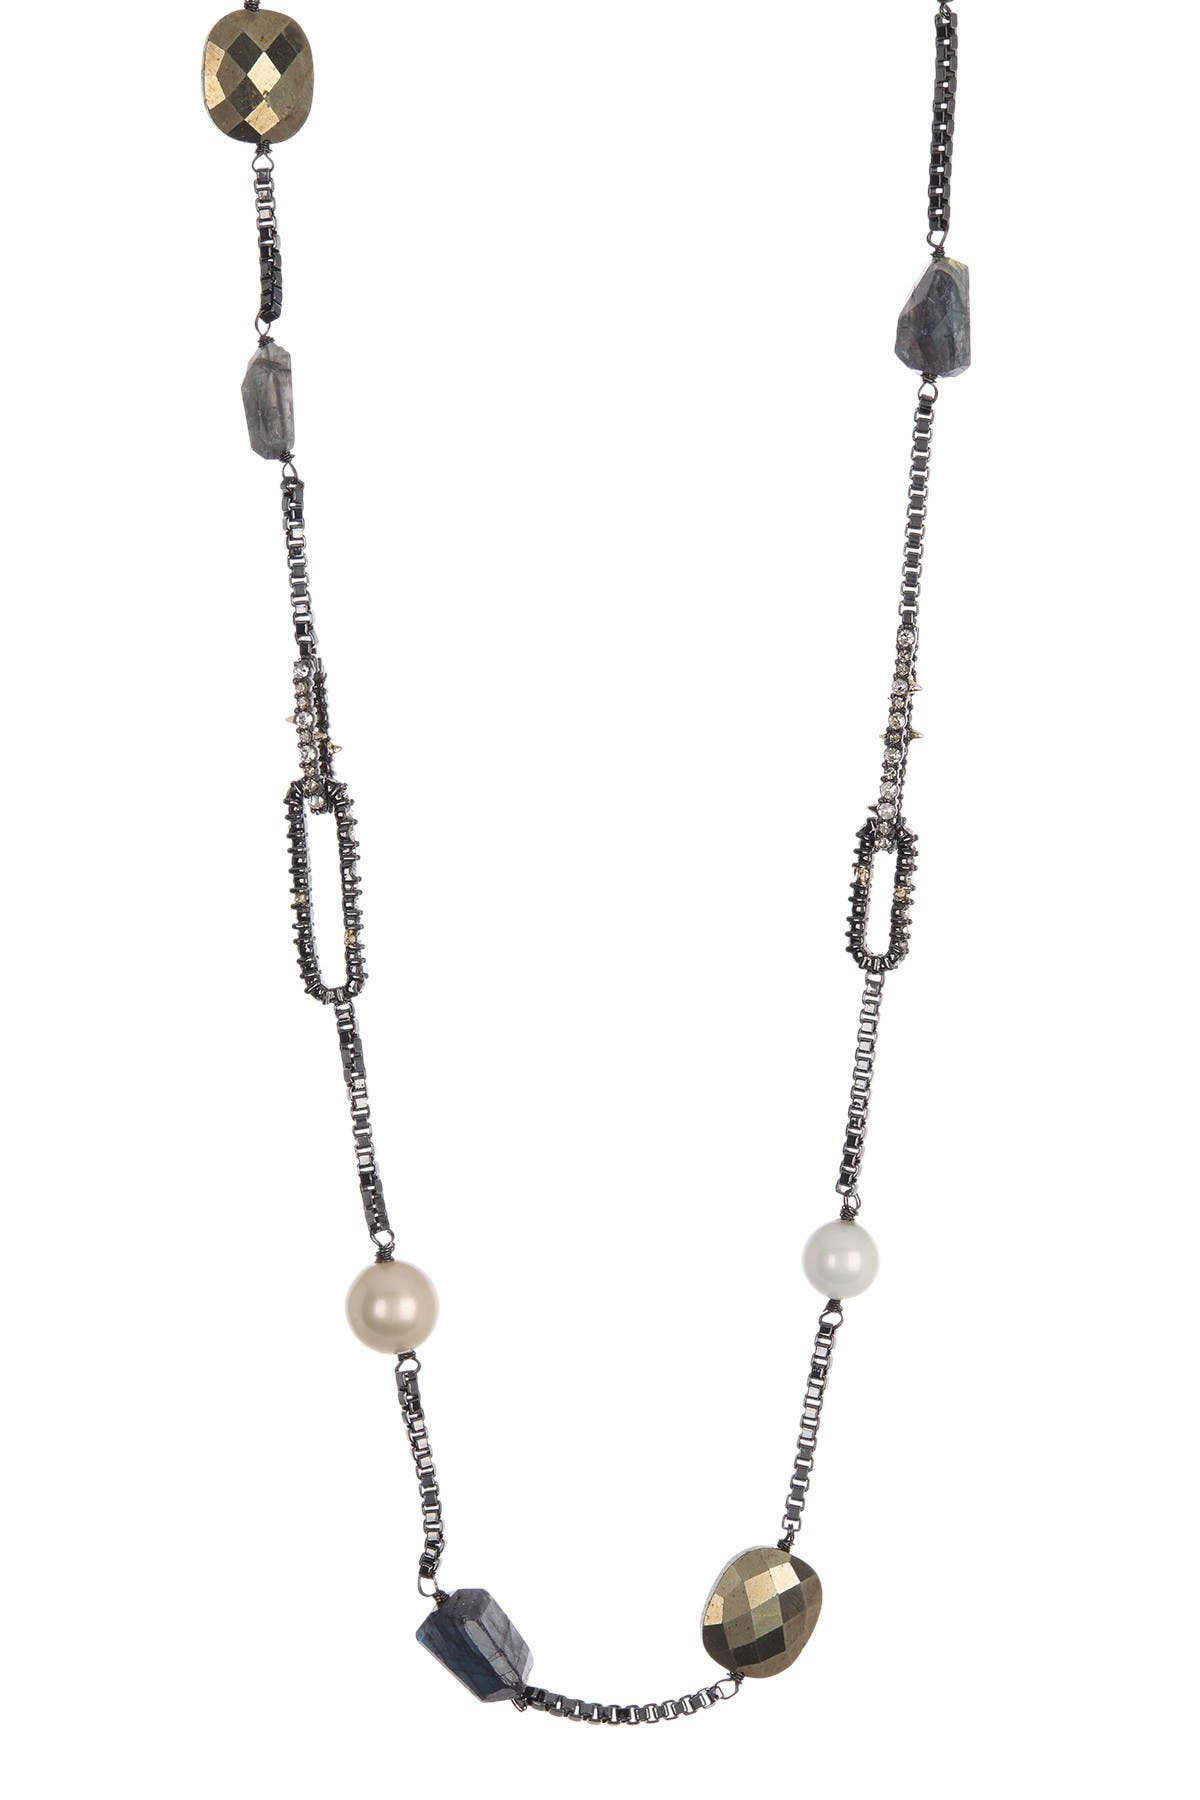 Image of Alexis Bittar Beaded Stone Station Necklace